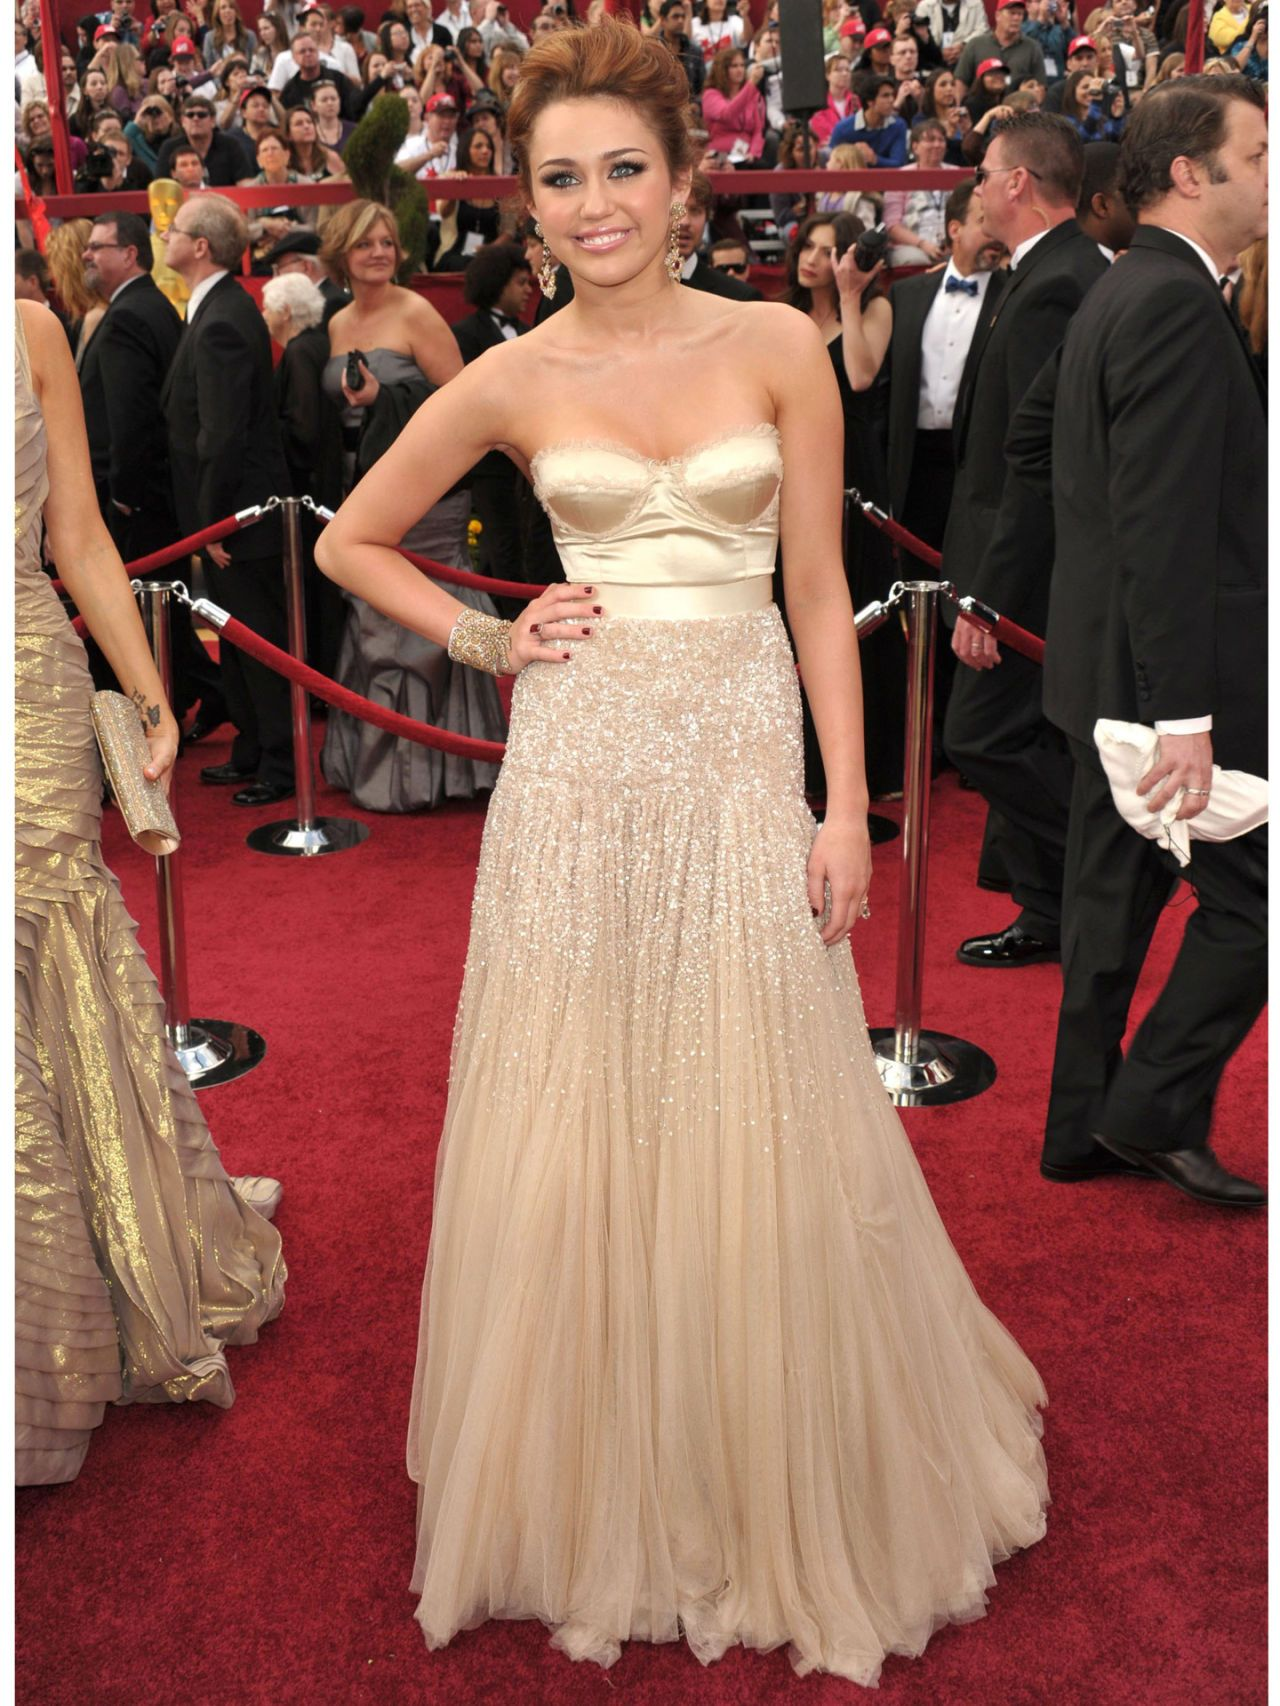 Miley Cyrus Fashion Pictures - Miley Cyrus Style Throughout the Years